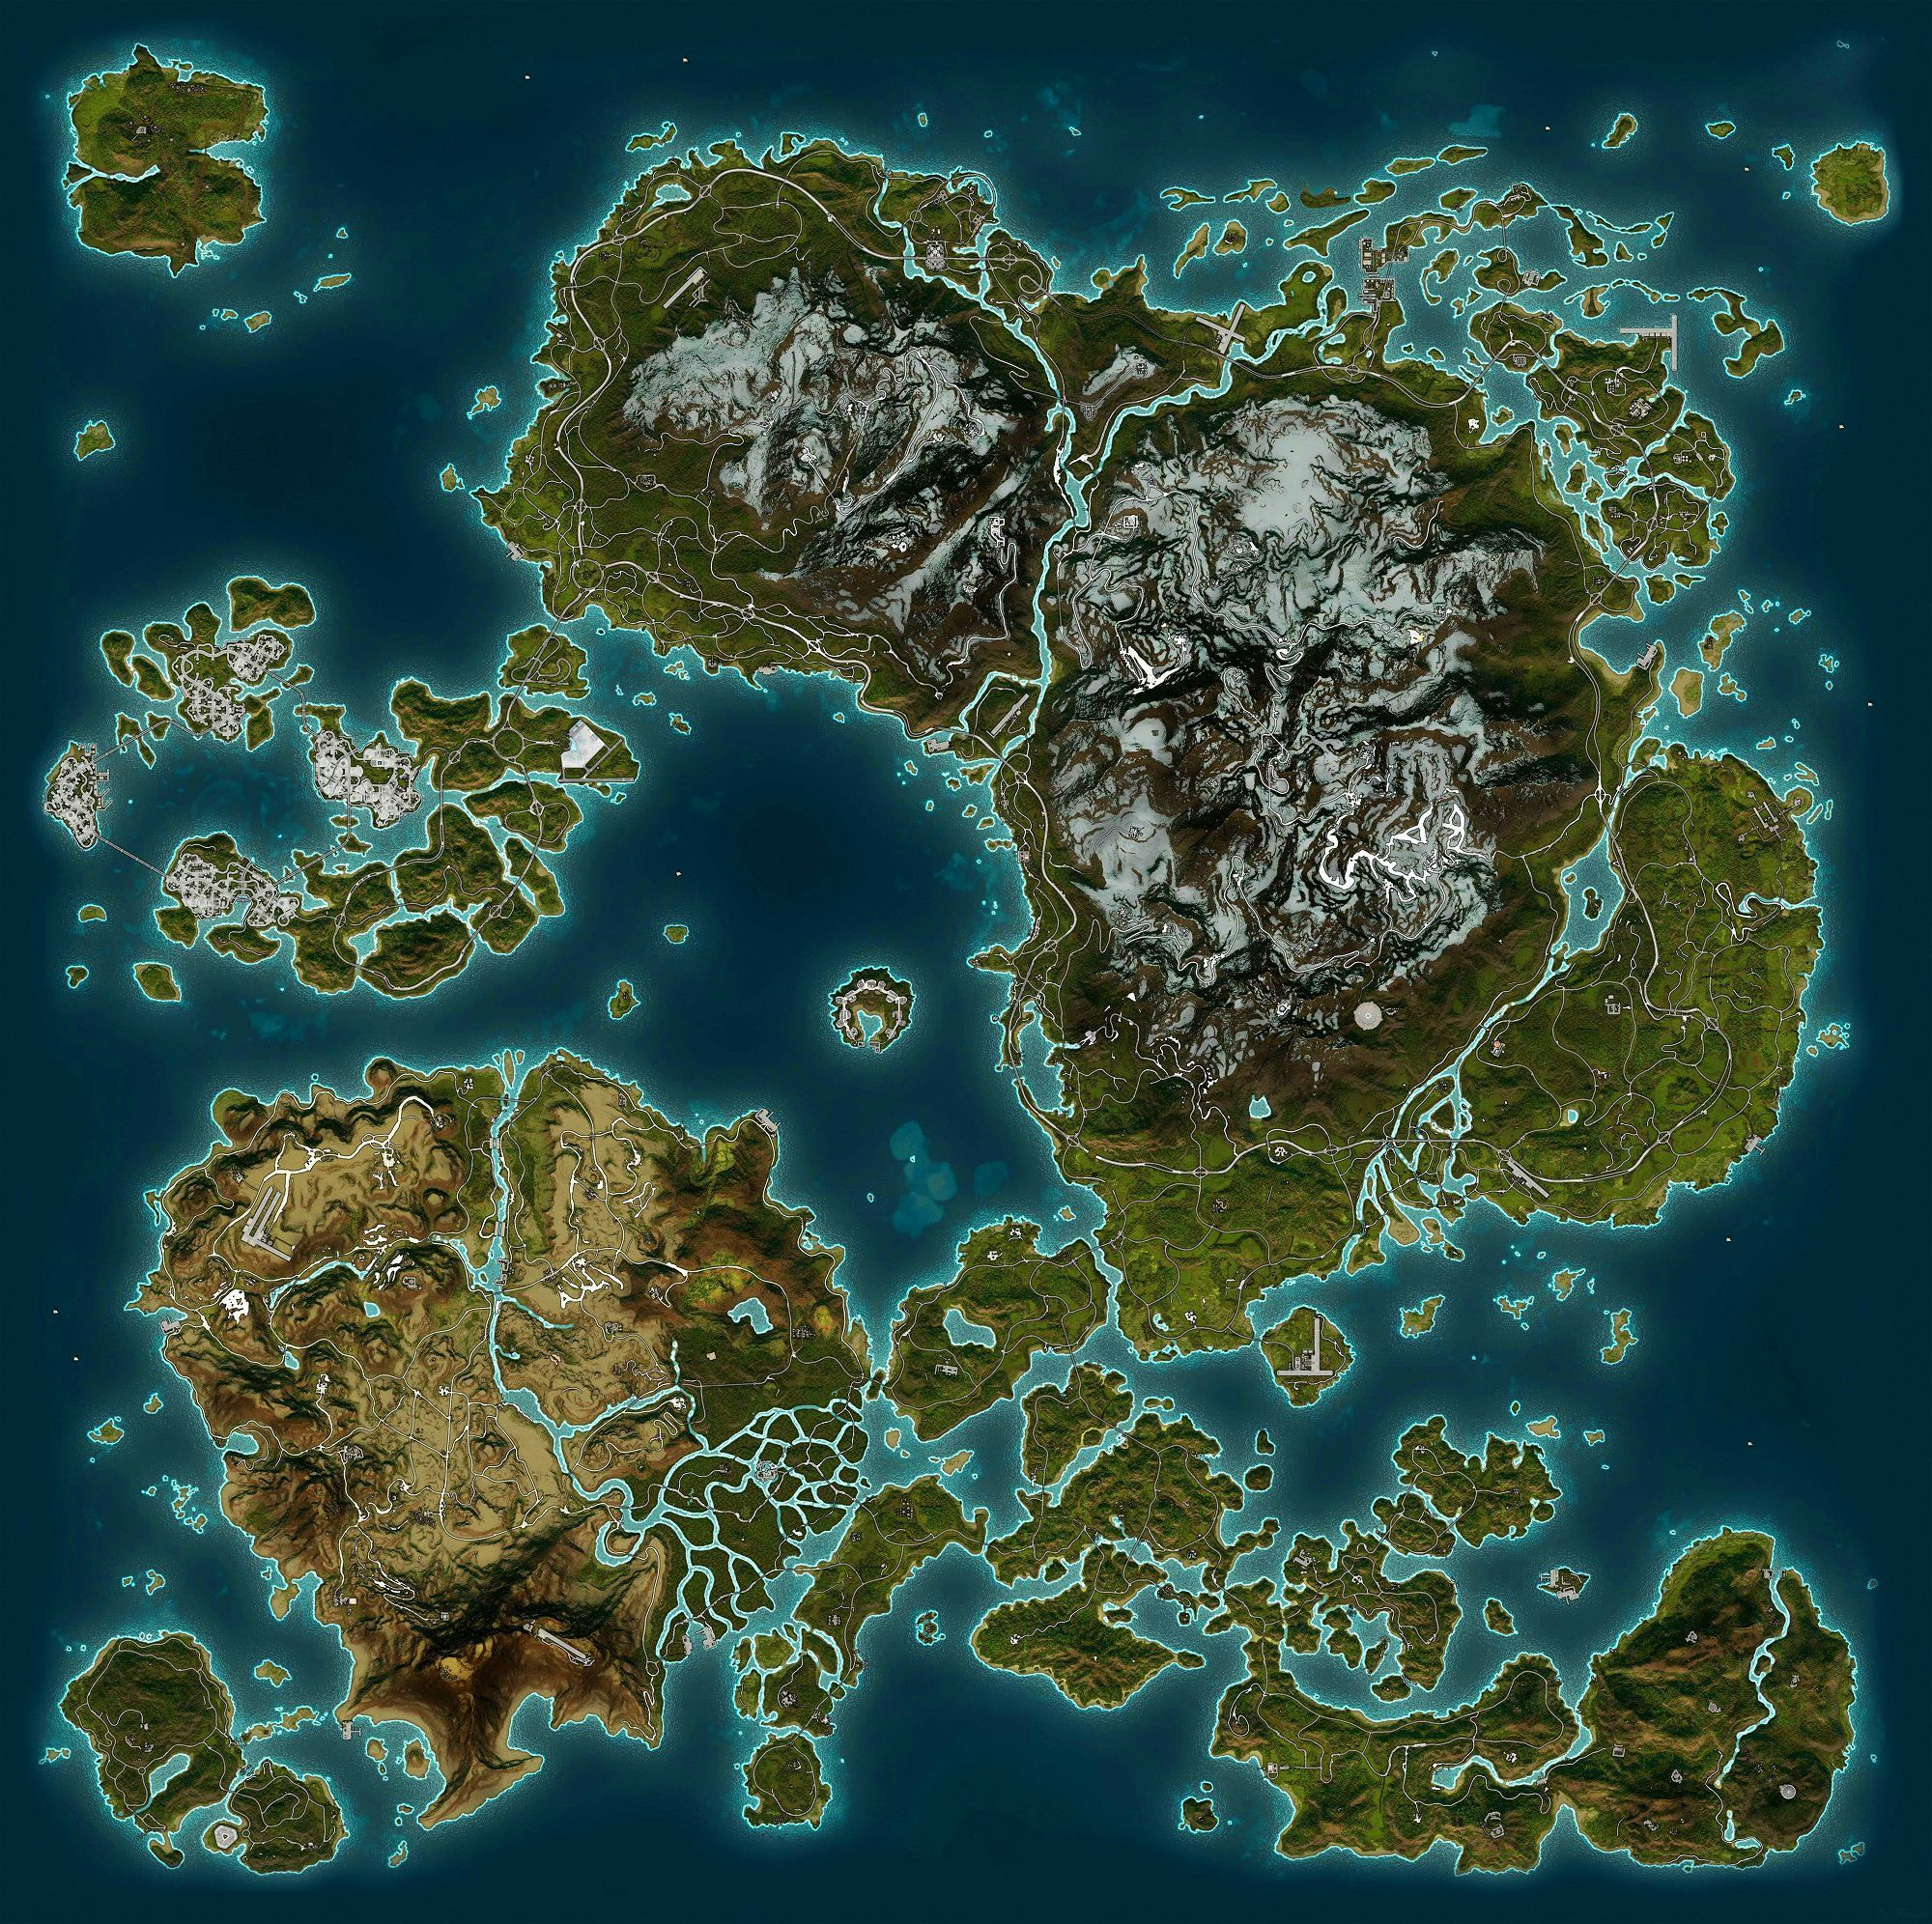 Just Cause 2 - NeoGAF | Fantasy world map, Fantasy map ... on skyrim map size, driveclub map size, wasteland 2 map size, need for speed rivals map size, gta 5 map size, far cry 4 map size, tomb raider map size, fallout map size, l.a. noire map size, bloodborne map size, star citizen map size, starcraft 2 map size, don't starve map size, assassin's creed unity map size, goat simulator map size, open world map size, sunset overdrive map size, far cry 2 map size, infamous second son map size,